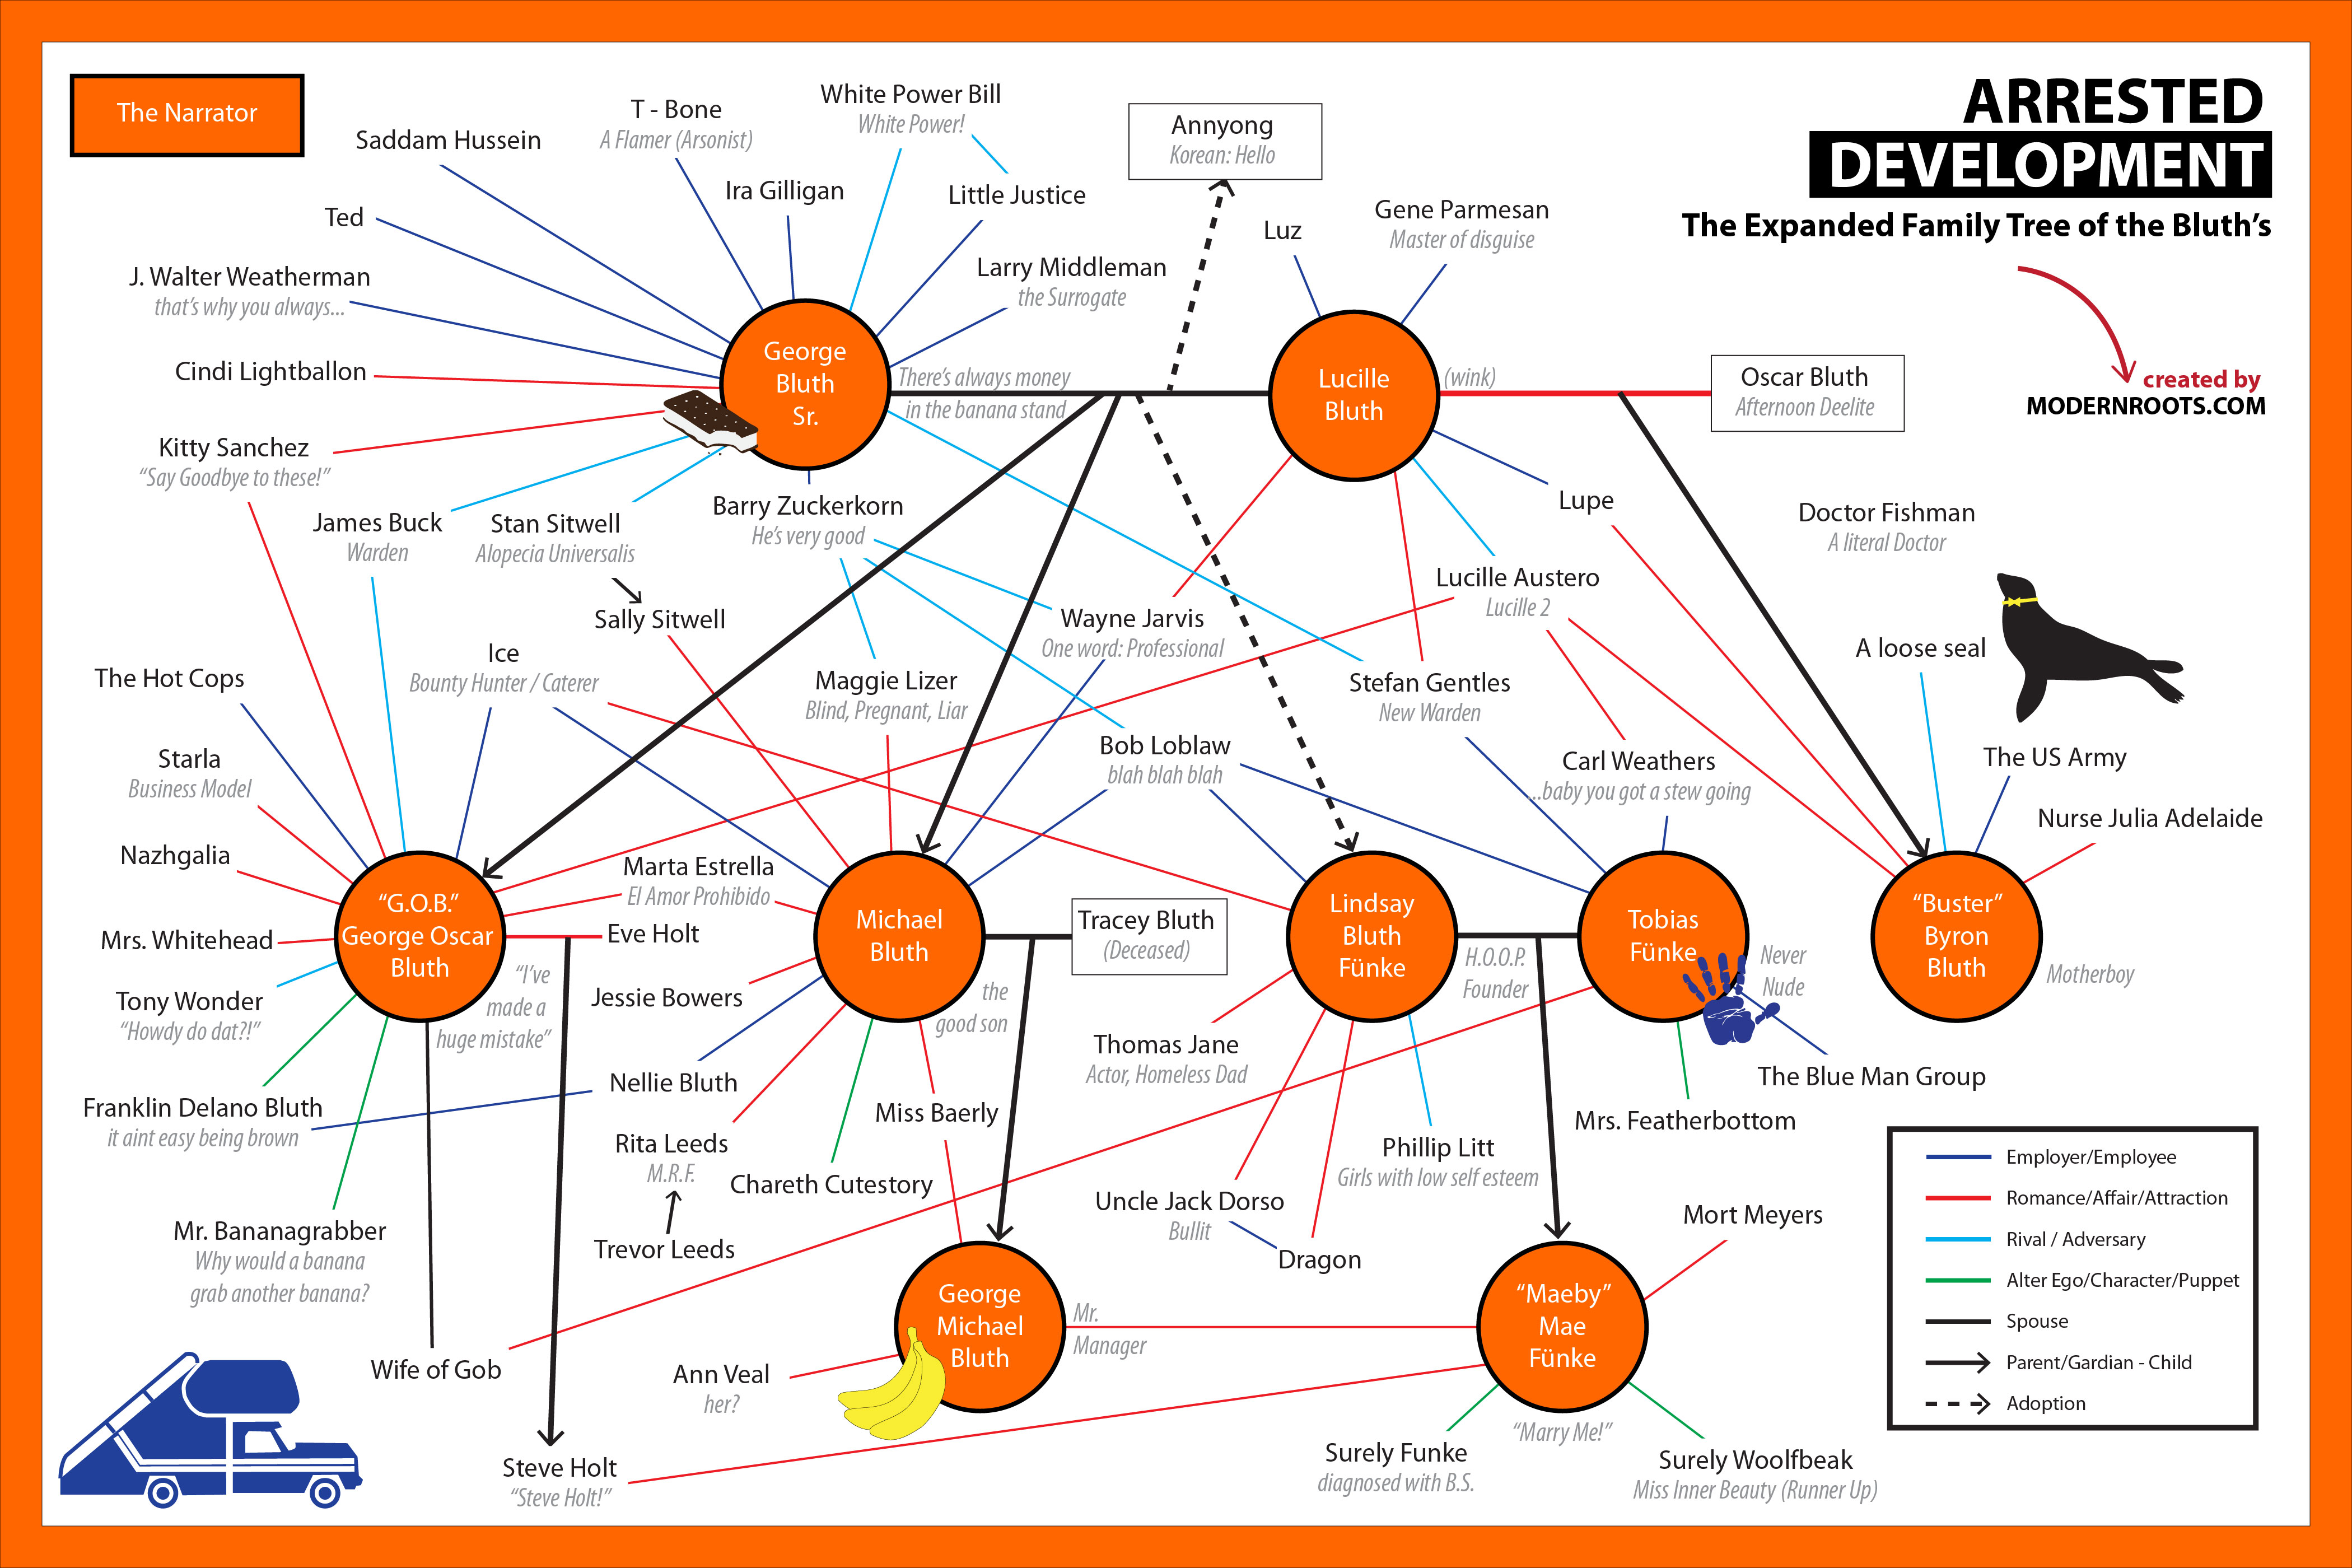 arrested development the expanded bluth family tree visual ly